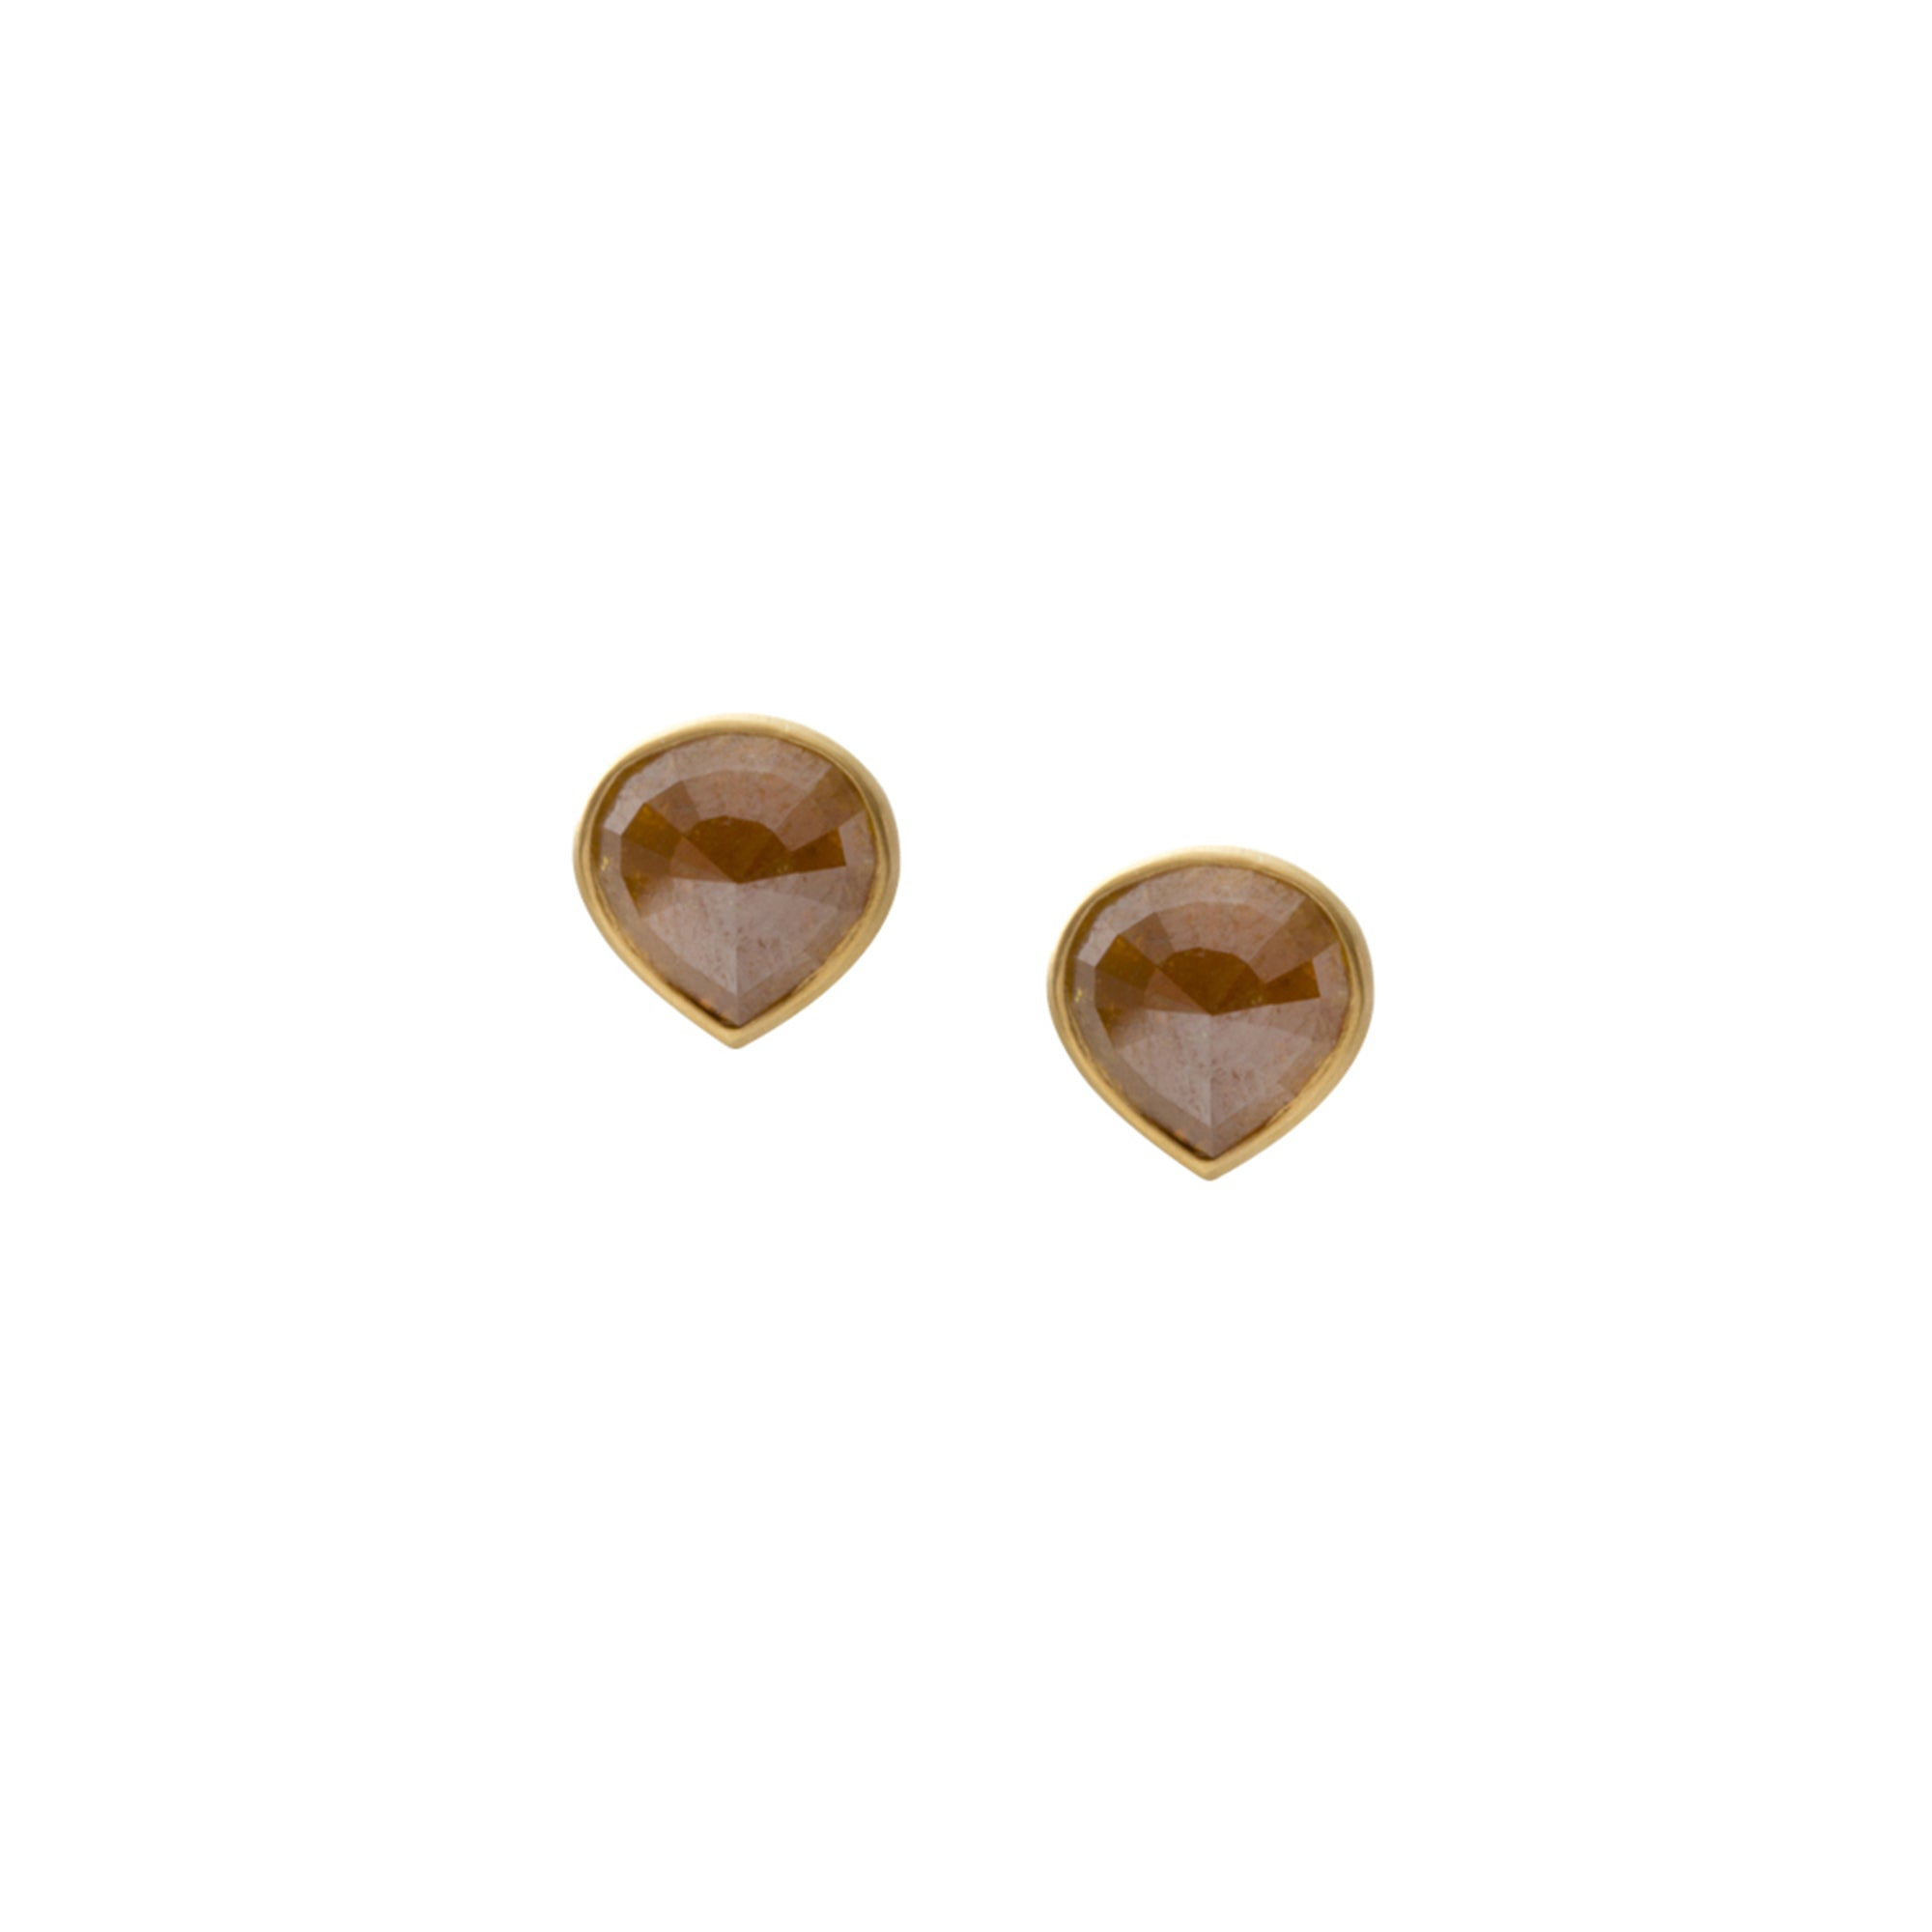 Gold Rose-Cut Diamond Studs by Loriann Stevenson for Broken English Jewelry